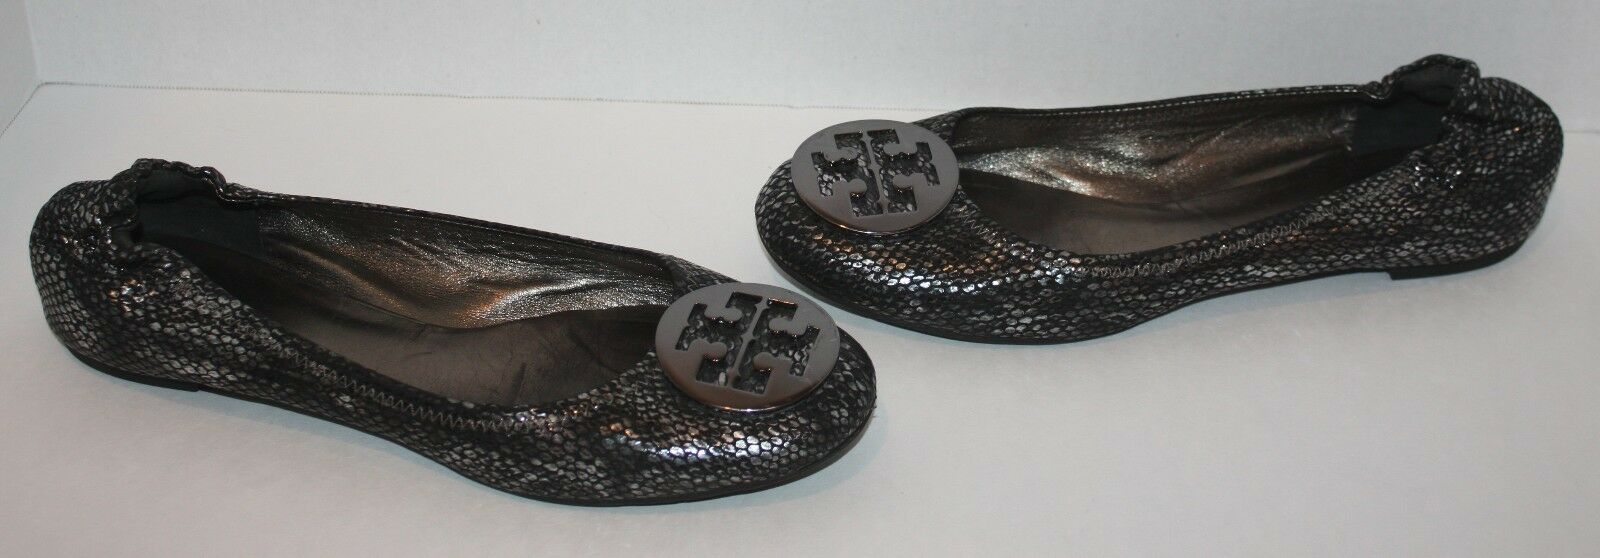 Womens $235 Tory Burch Silver Reva Plated Snake Print Flats Shoes Size 9.5 M